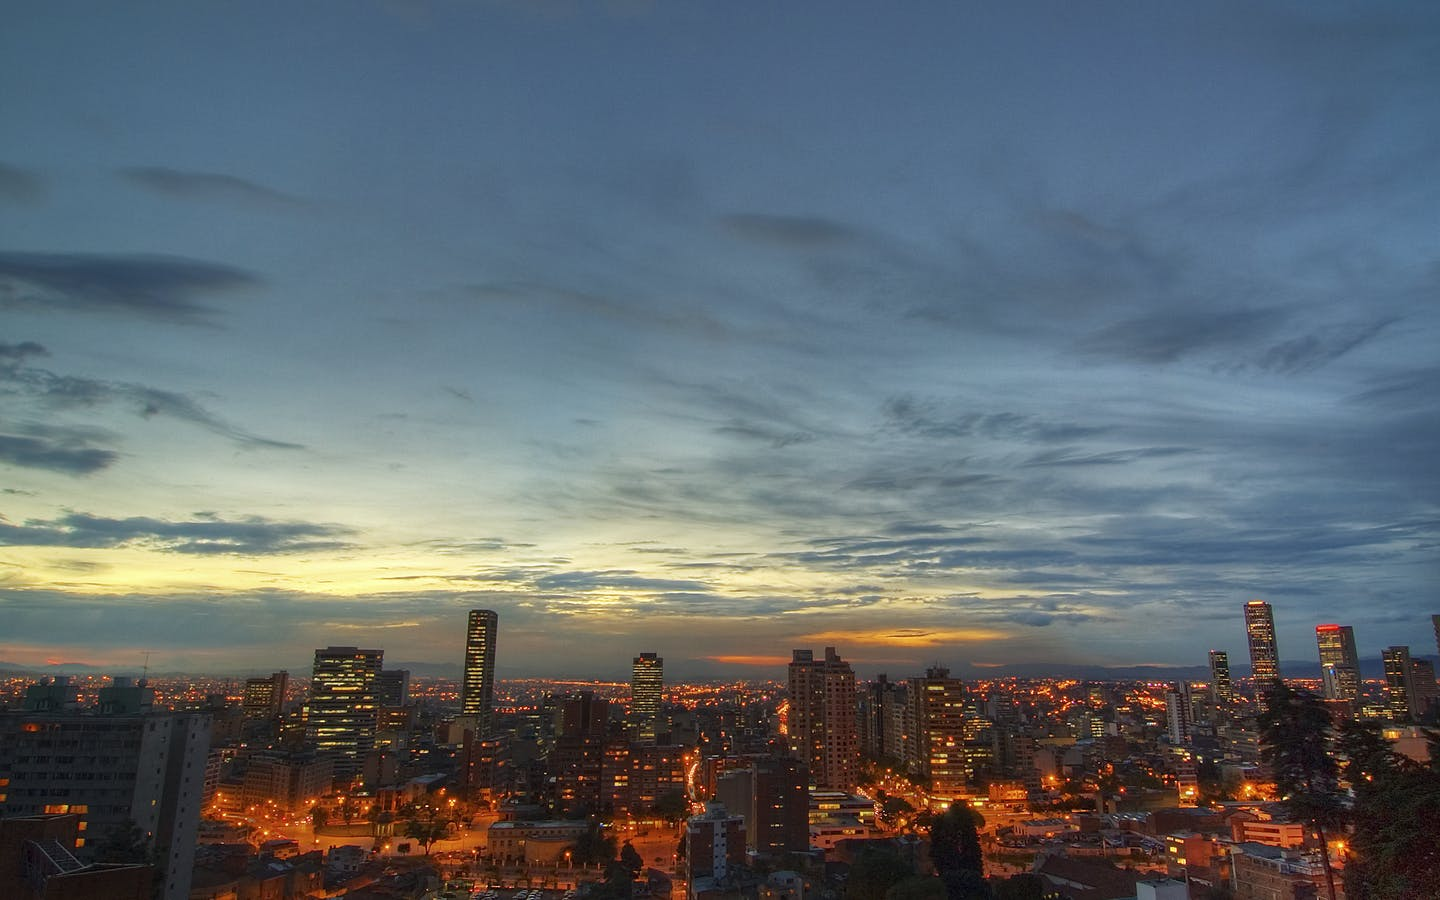 Evening Sky over Bogota